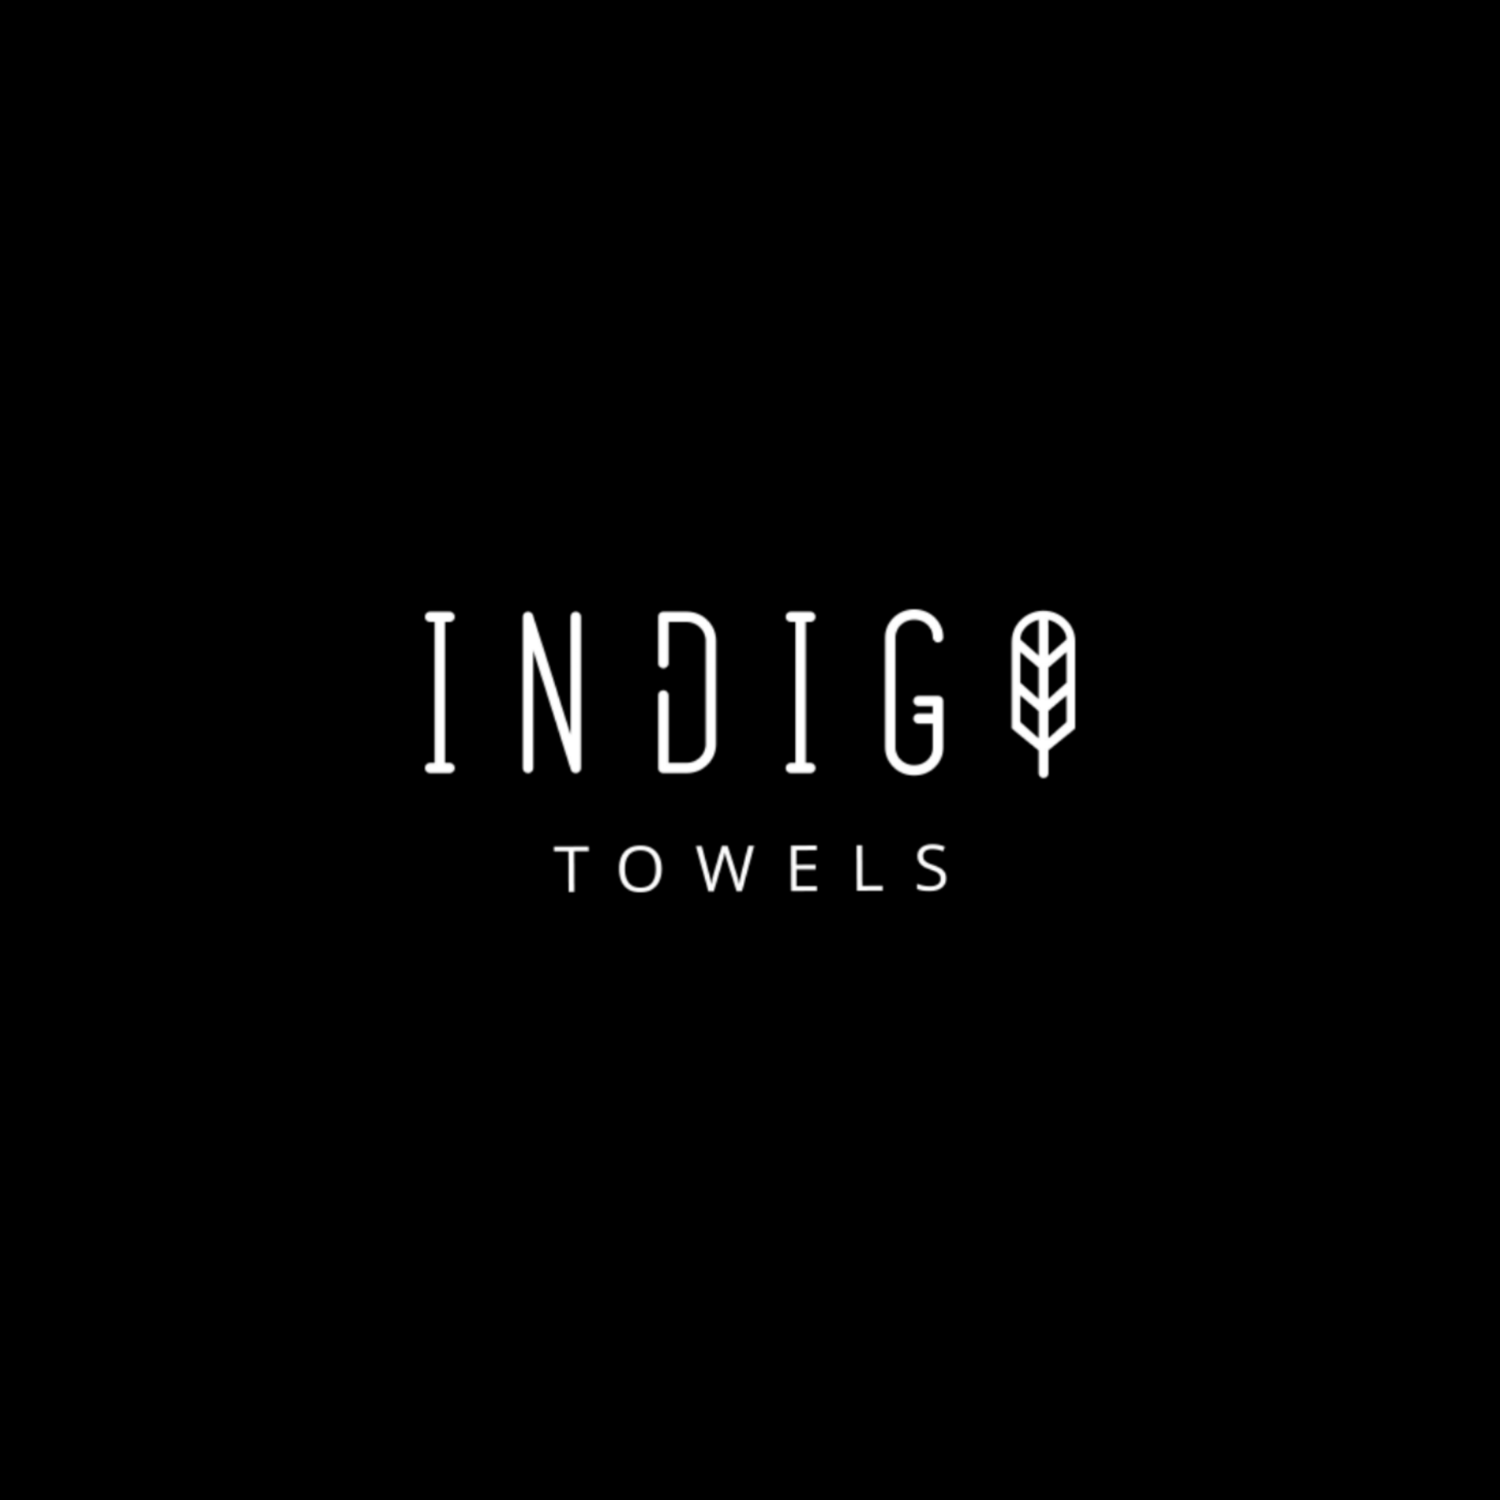 Indigo Towels